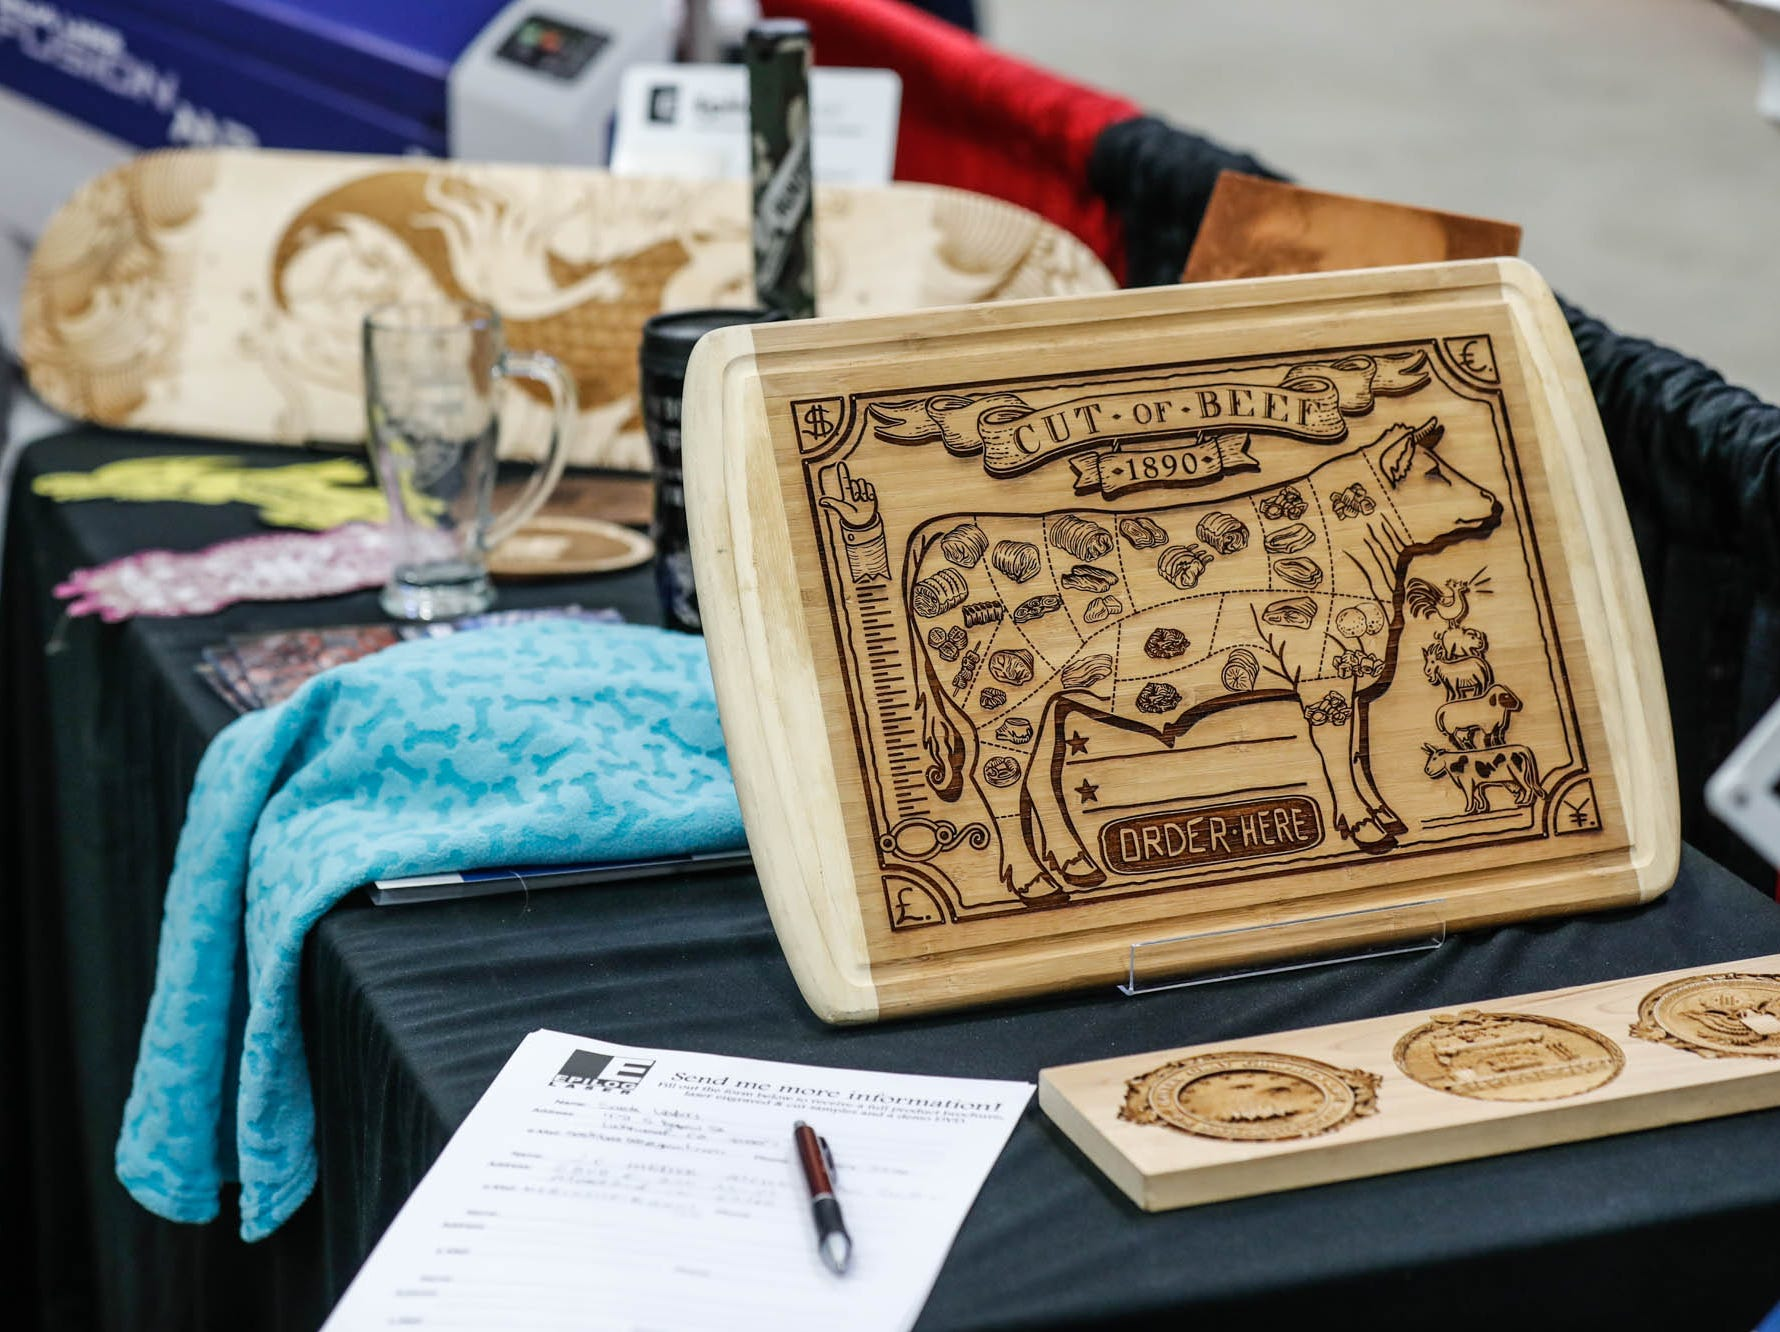 Laser cut items are on display in the Epilog Laser booth during a Wood Working Show at the Indiana State Fairgrounds in Indianapolis on Sunday, Feb. 3, 2019.